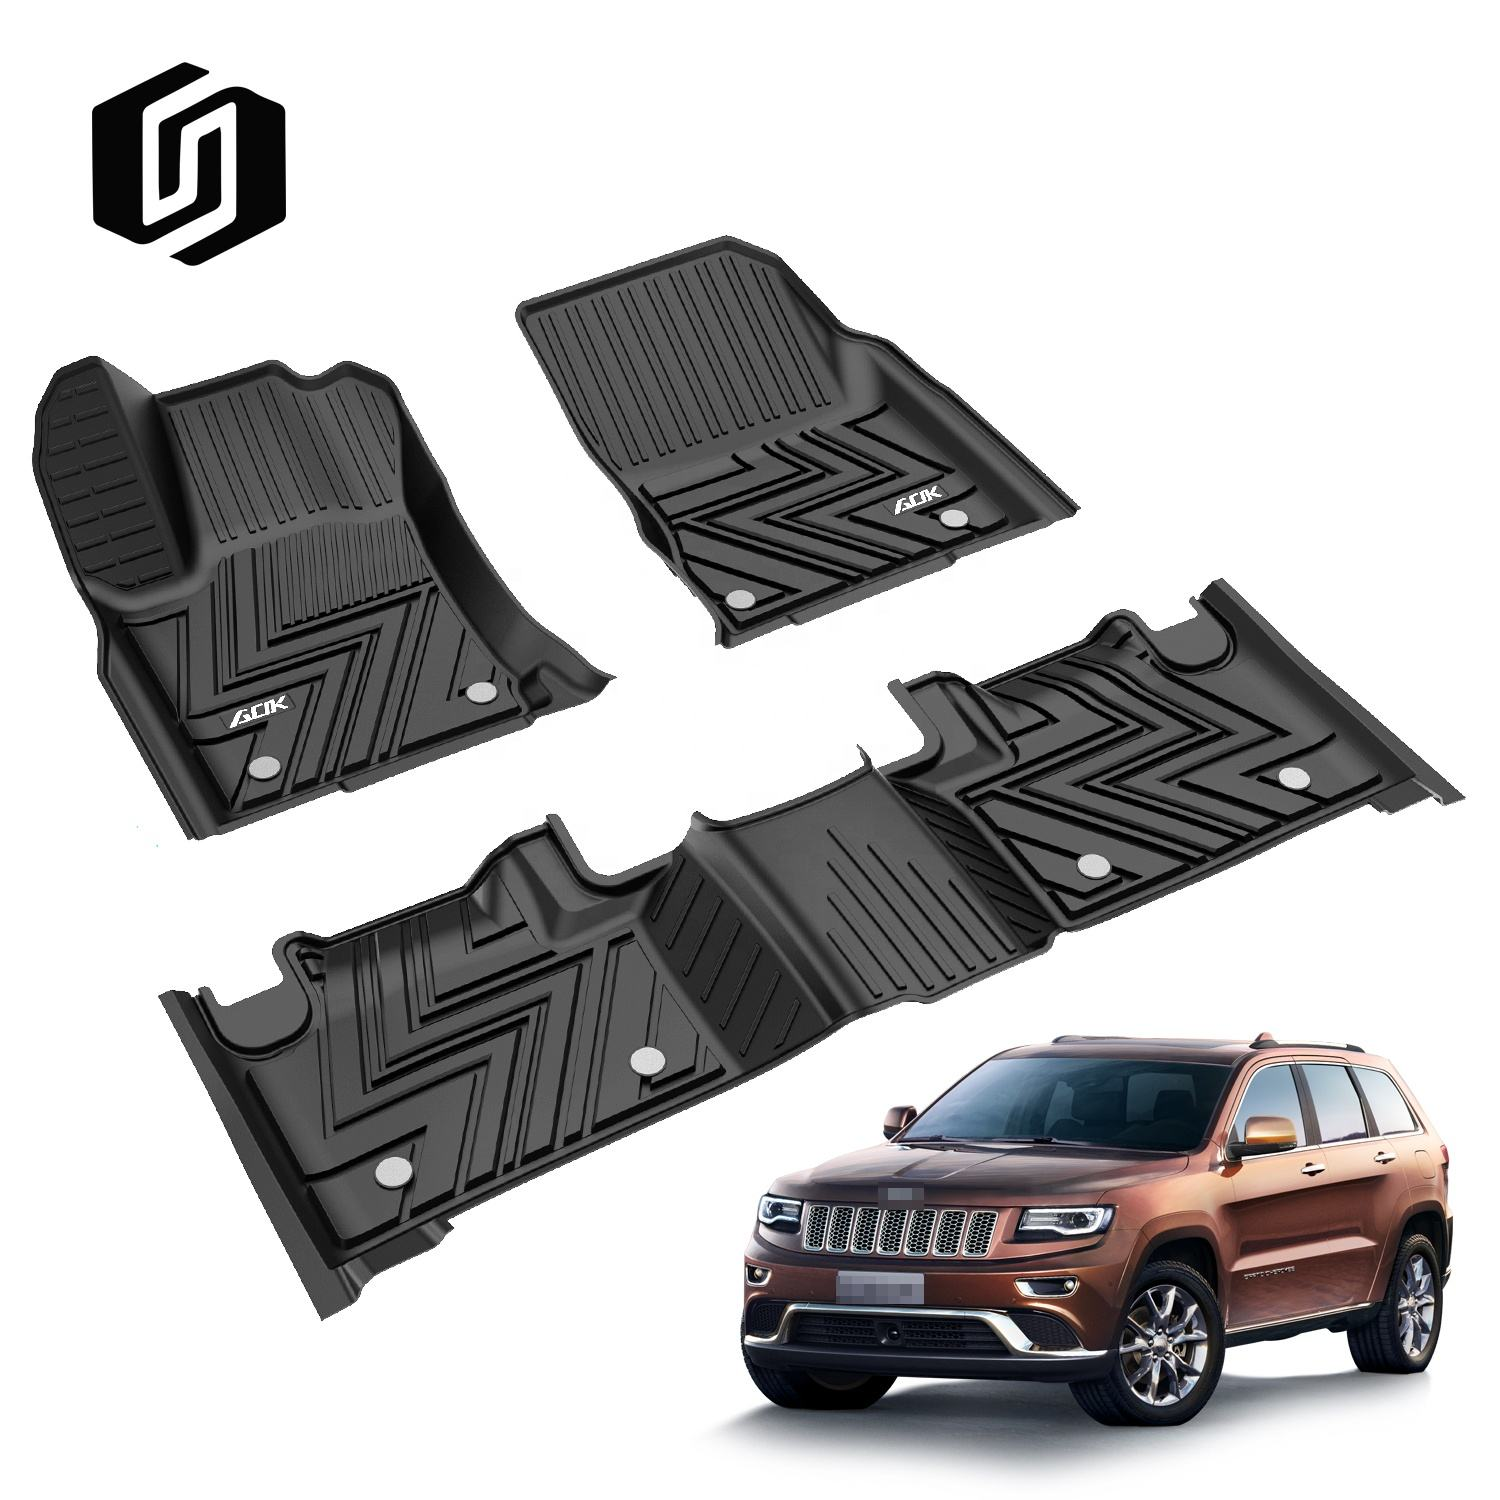 2020 New design 3D rubber molded interior car accessories car mats for GRAND CHEROKEE 2013+//